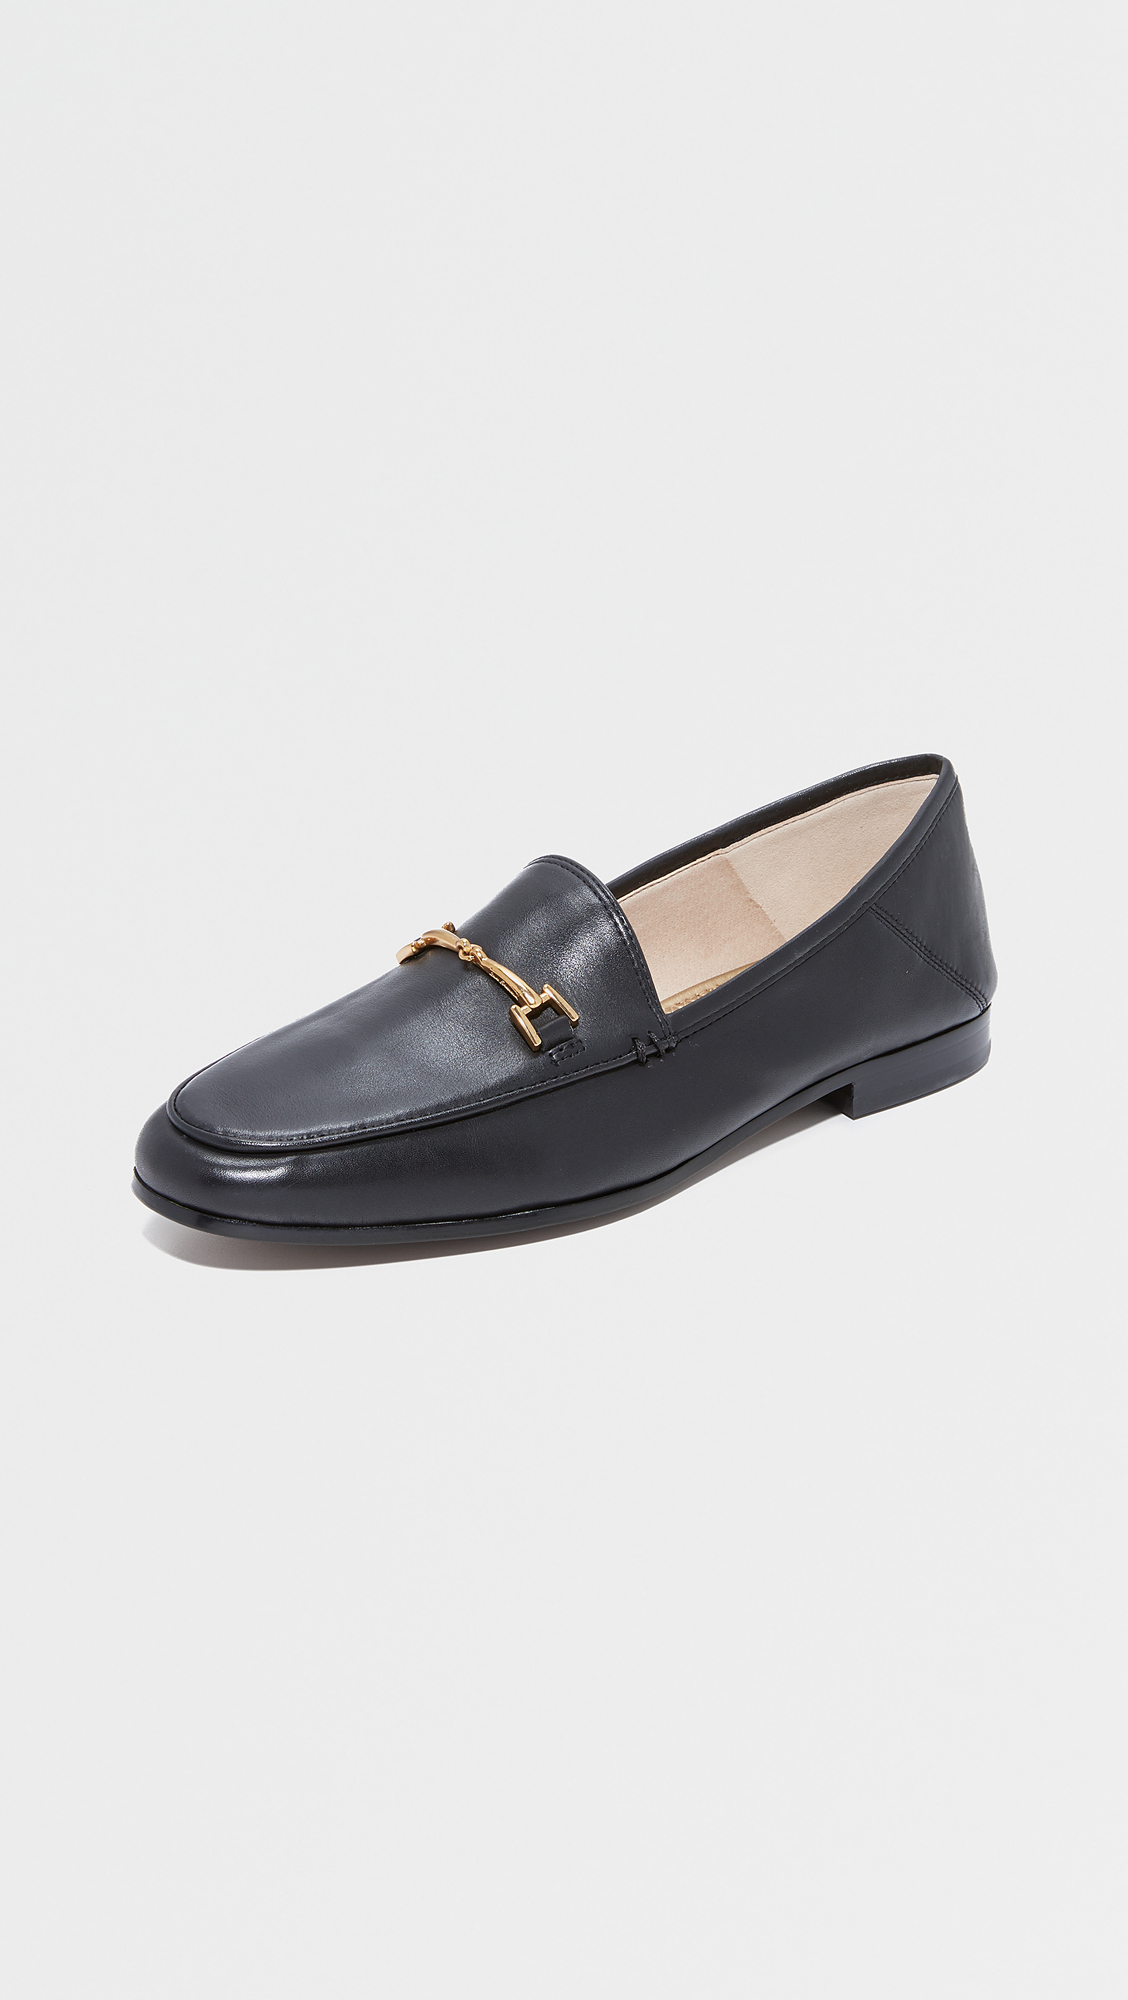 dfac20db979b Sam Edelman Loraine Loafers